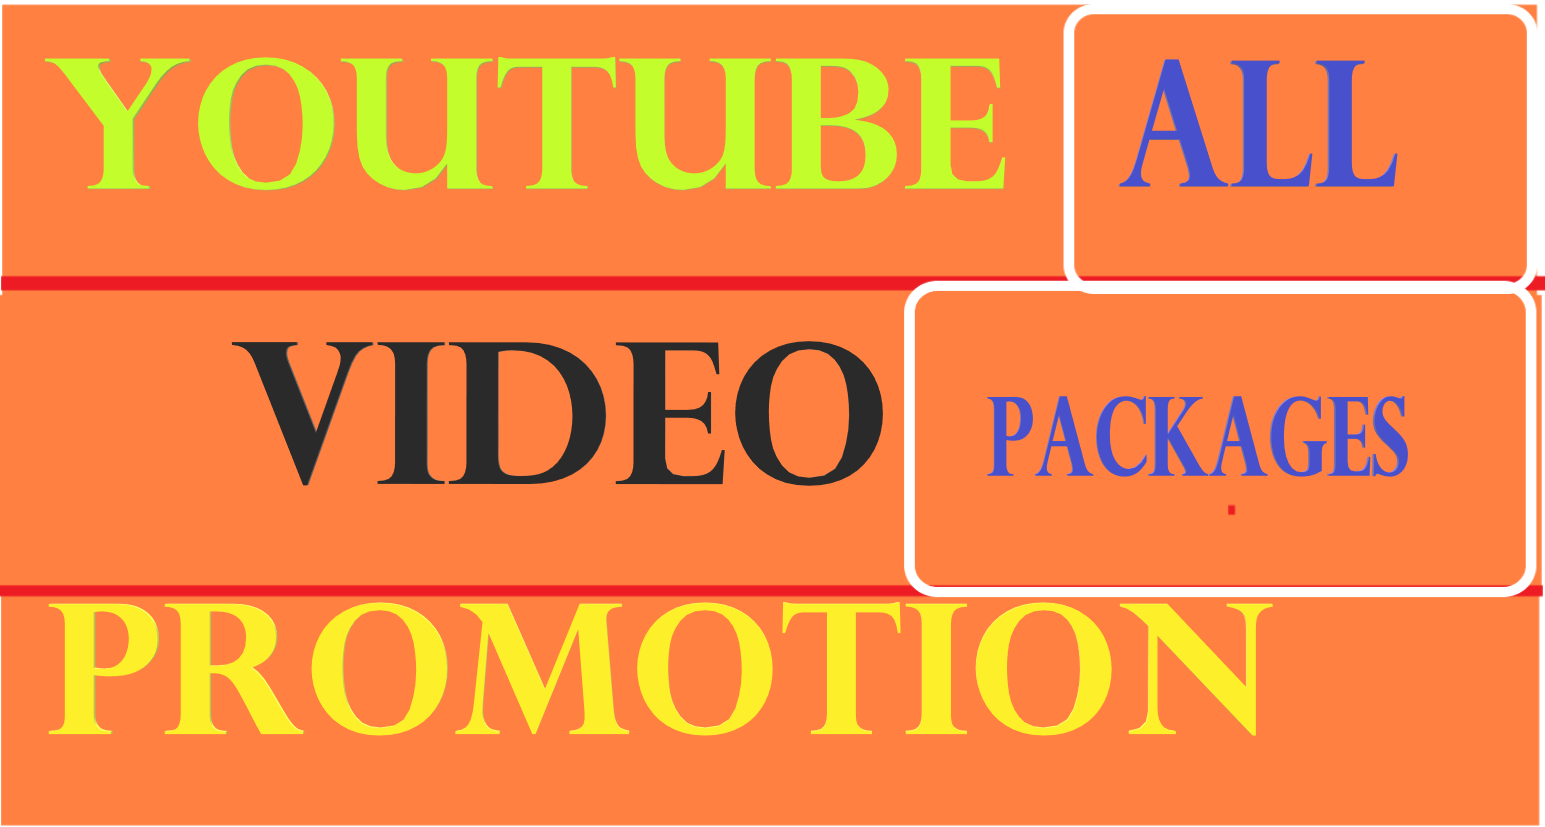 YouTube promotion all in one packages via social media marketing